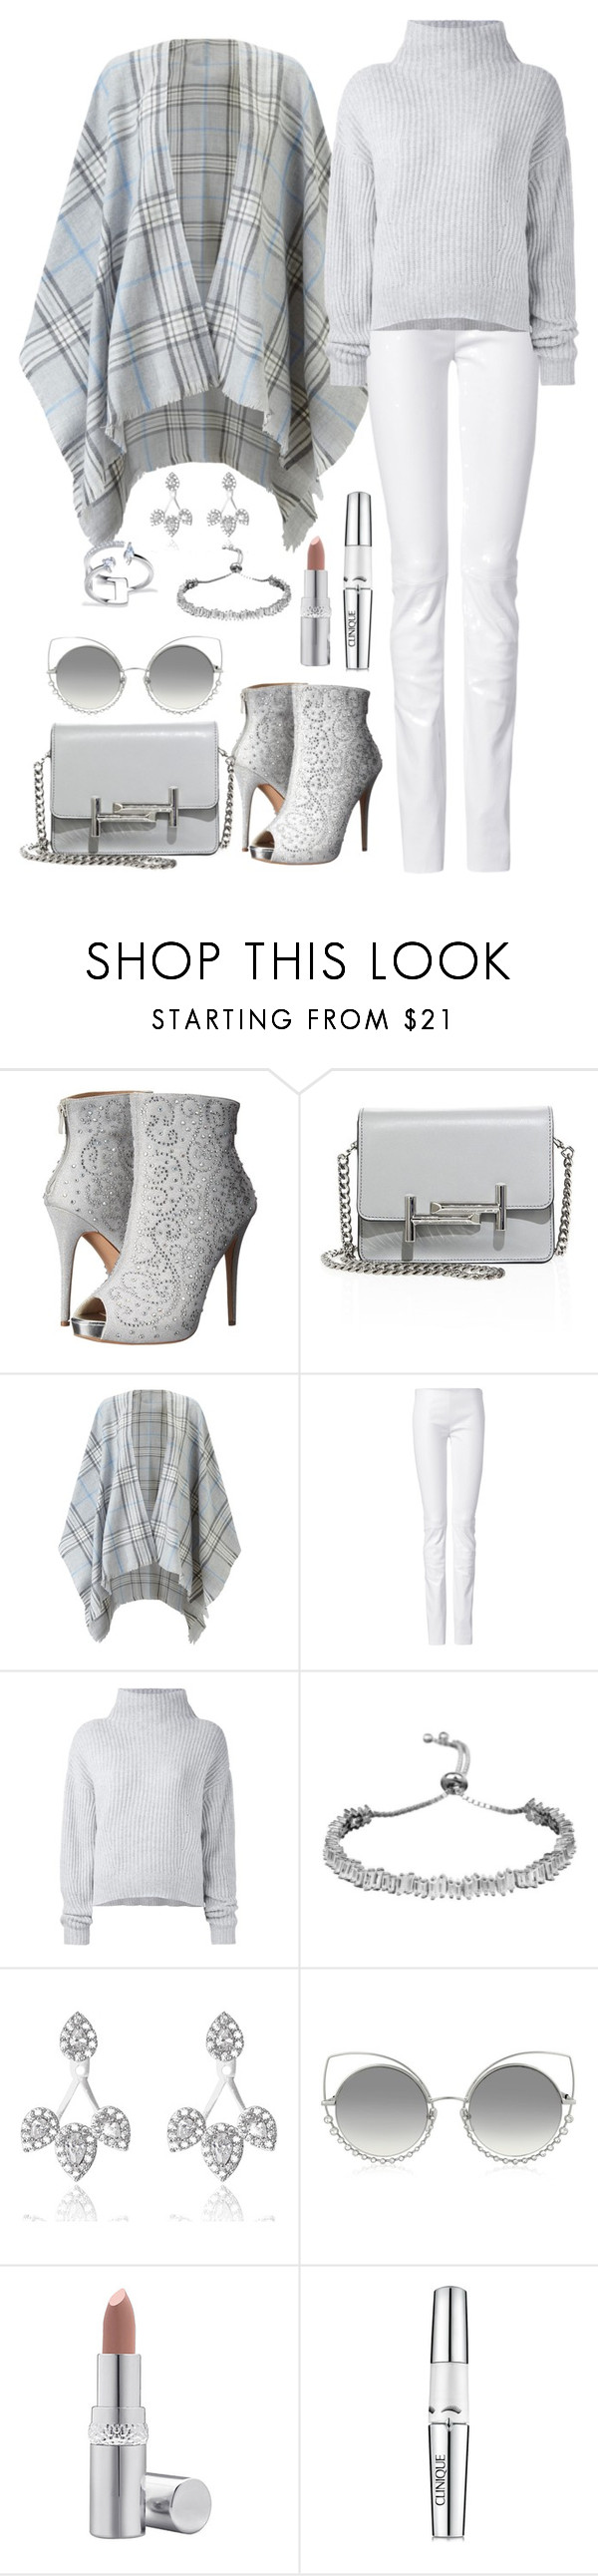 """""""Wishful Thinking"""" by loves-elephants ❤ liked on Polyvore featuring Lauren Lorraine, Tod's, John Lewis, Jitrois, Le Kasha, Marc Jacobs, La Prairie and Clinique"""